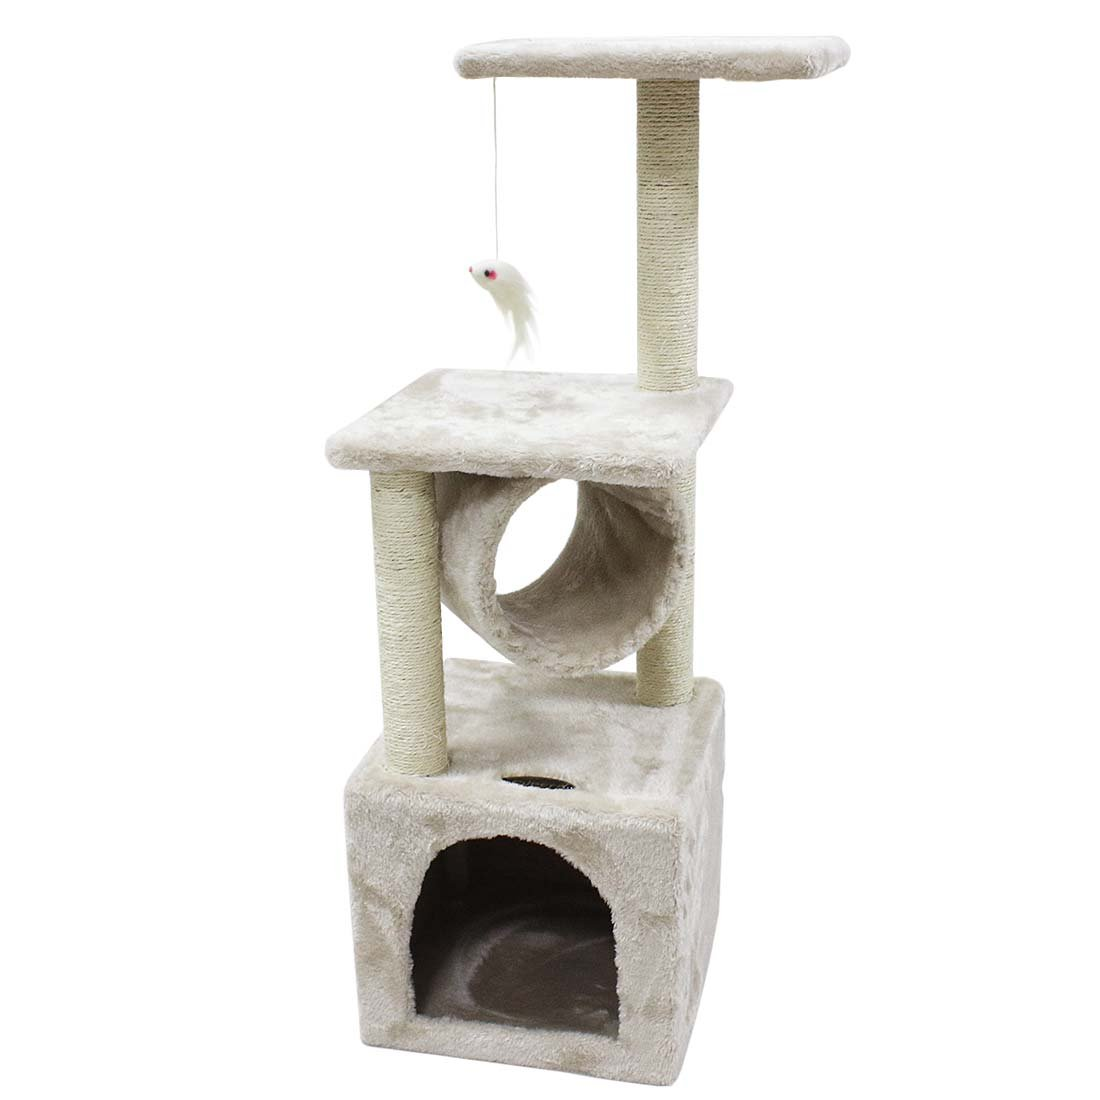 CUPETS Cat Tree beige flannelette Cat Climber Play House Condo Furniture with Scratching Post, Activity Tree Pet Products for Cats 36 Inches High